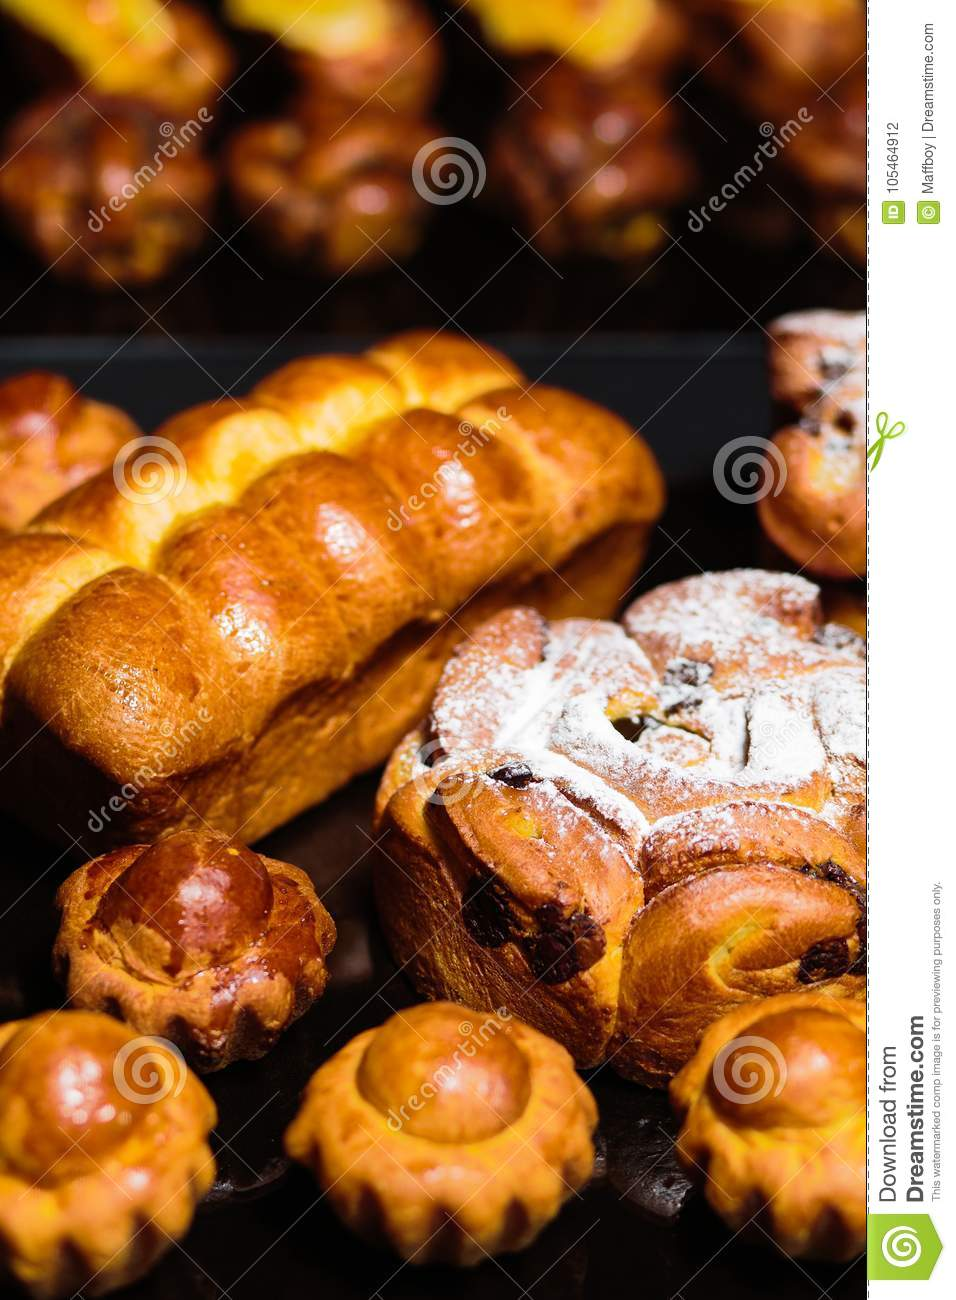 Freshly bread buns and bakery products on a table